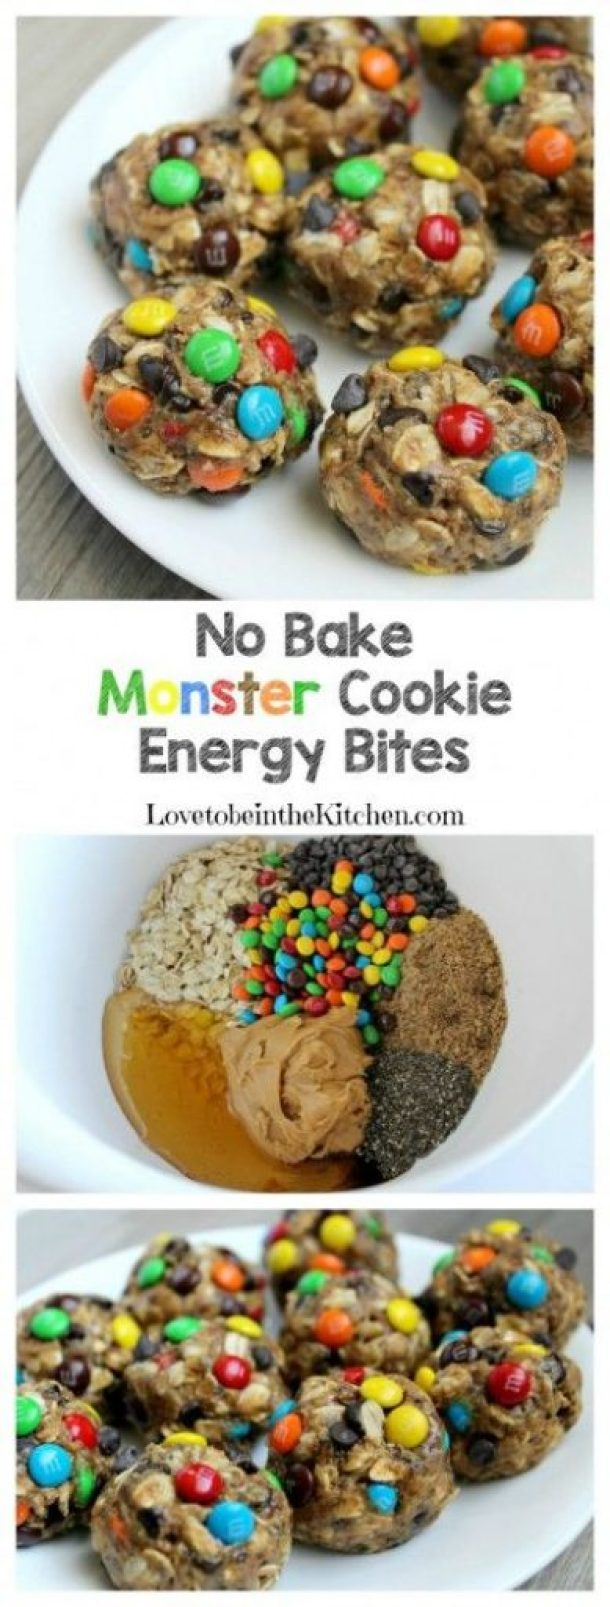 No Bake Cookies Recipes - No Bake Monster Cookie Energy Bites Recipe via Love to be in the Kitchen